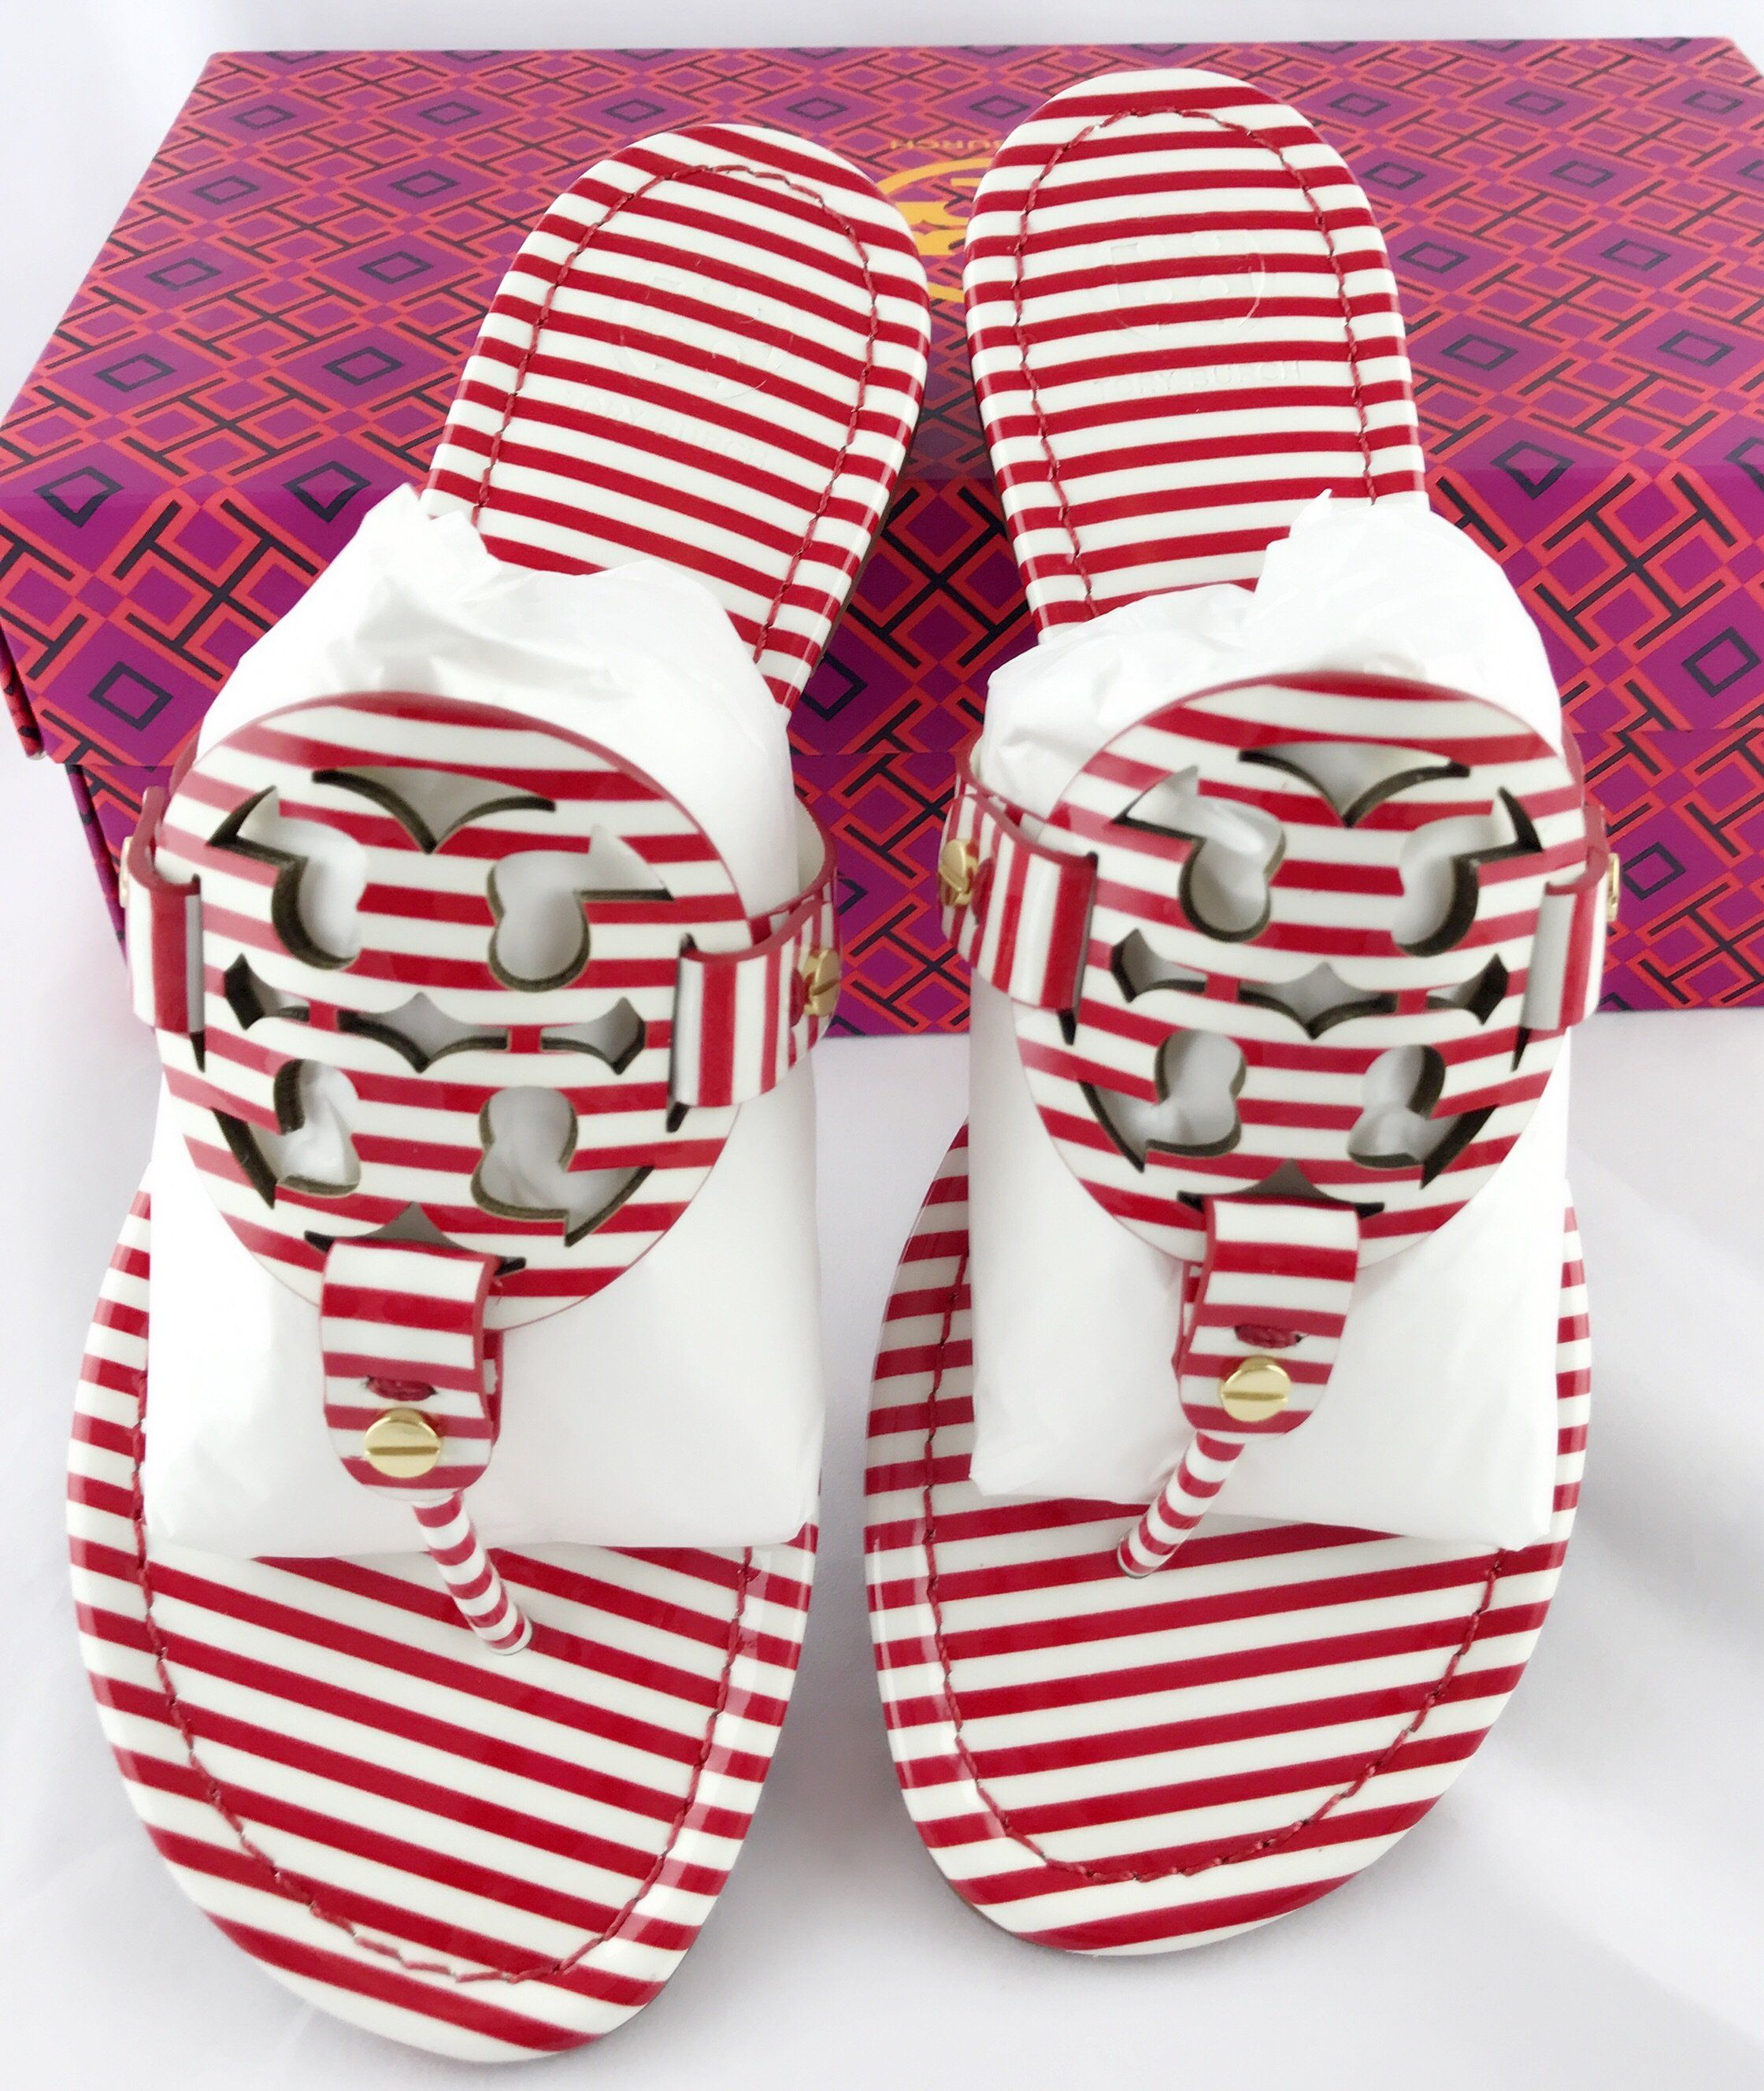 a03d00a985d Tory Burch Miller Sandal Patent Leather Red White Nautical Stripe 7 7.5   Handbags  GabysBags